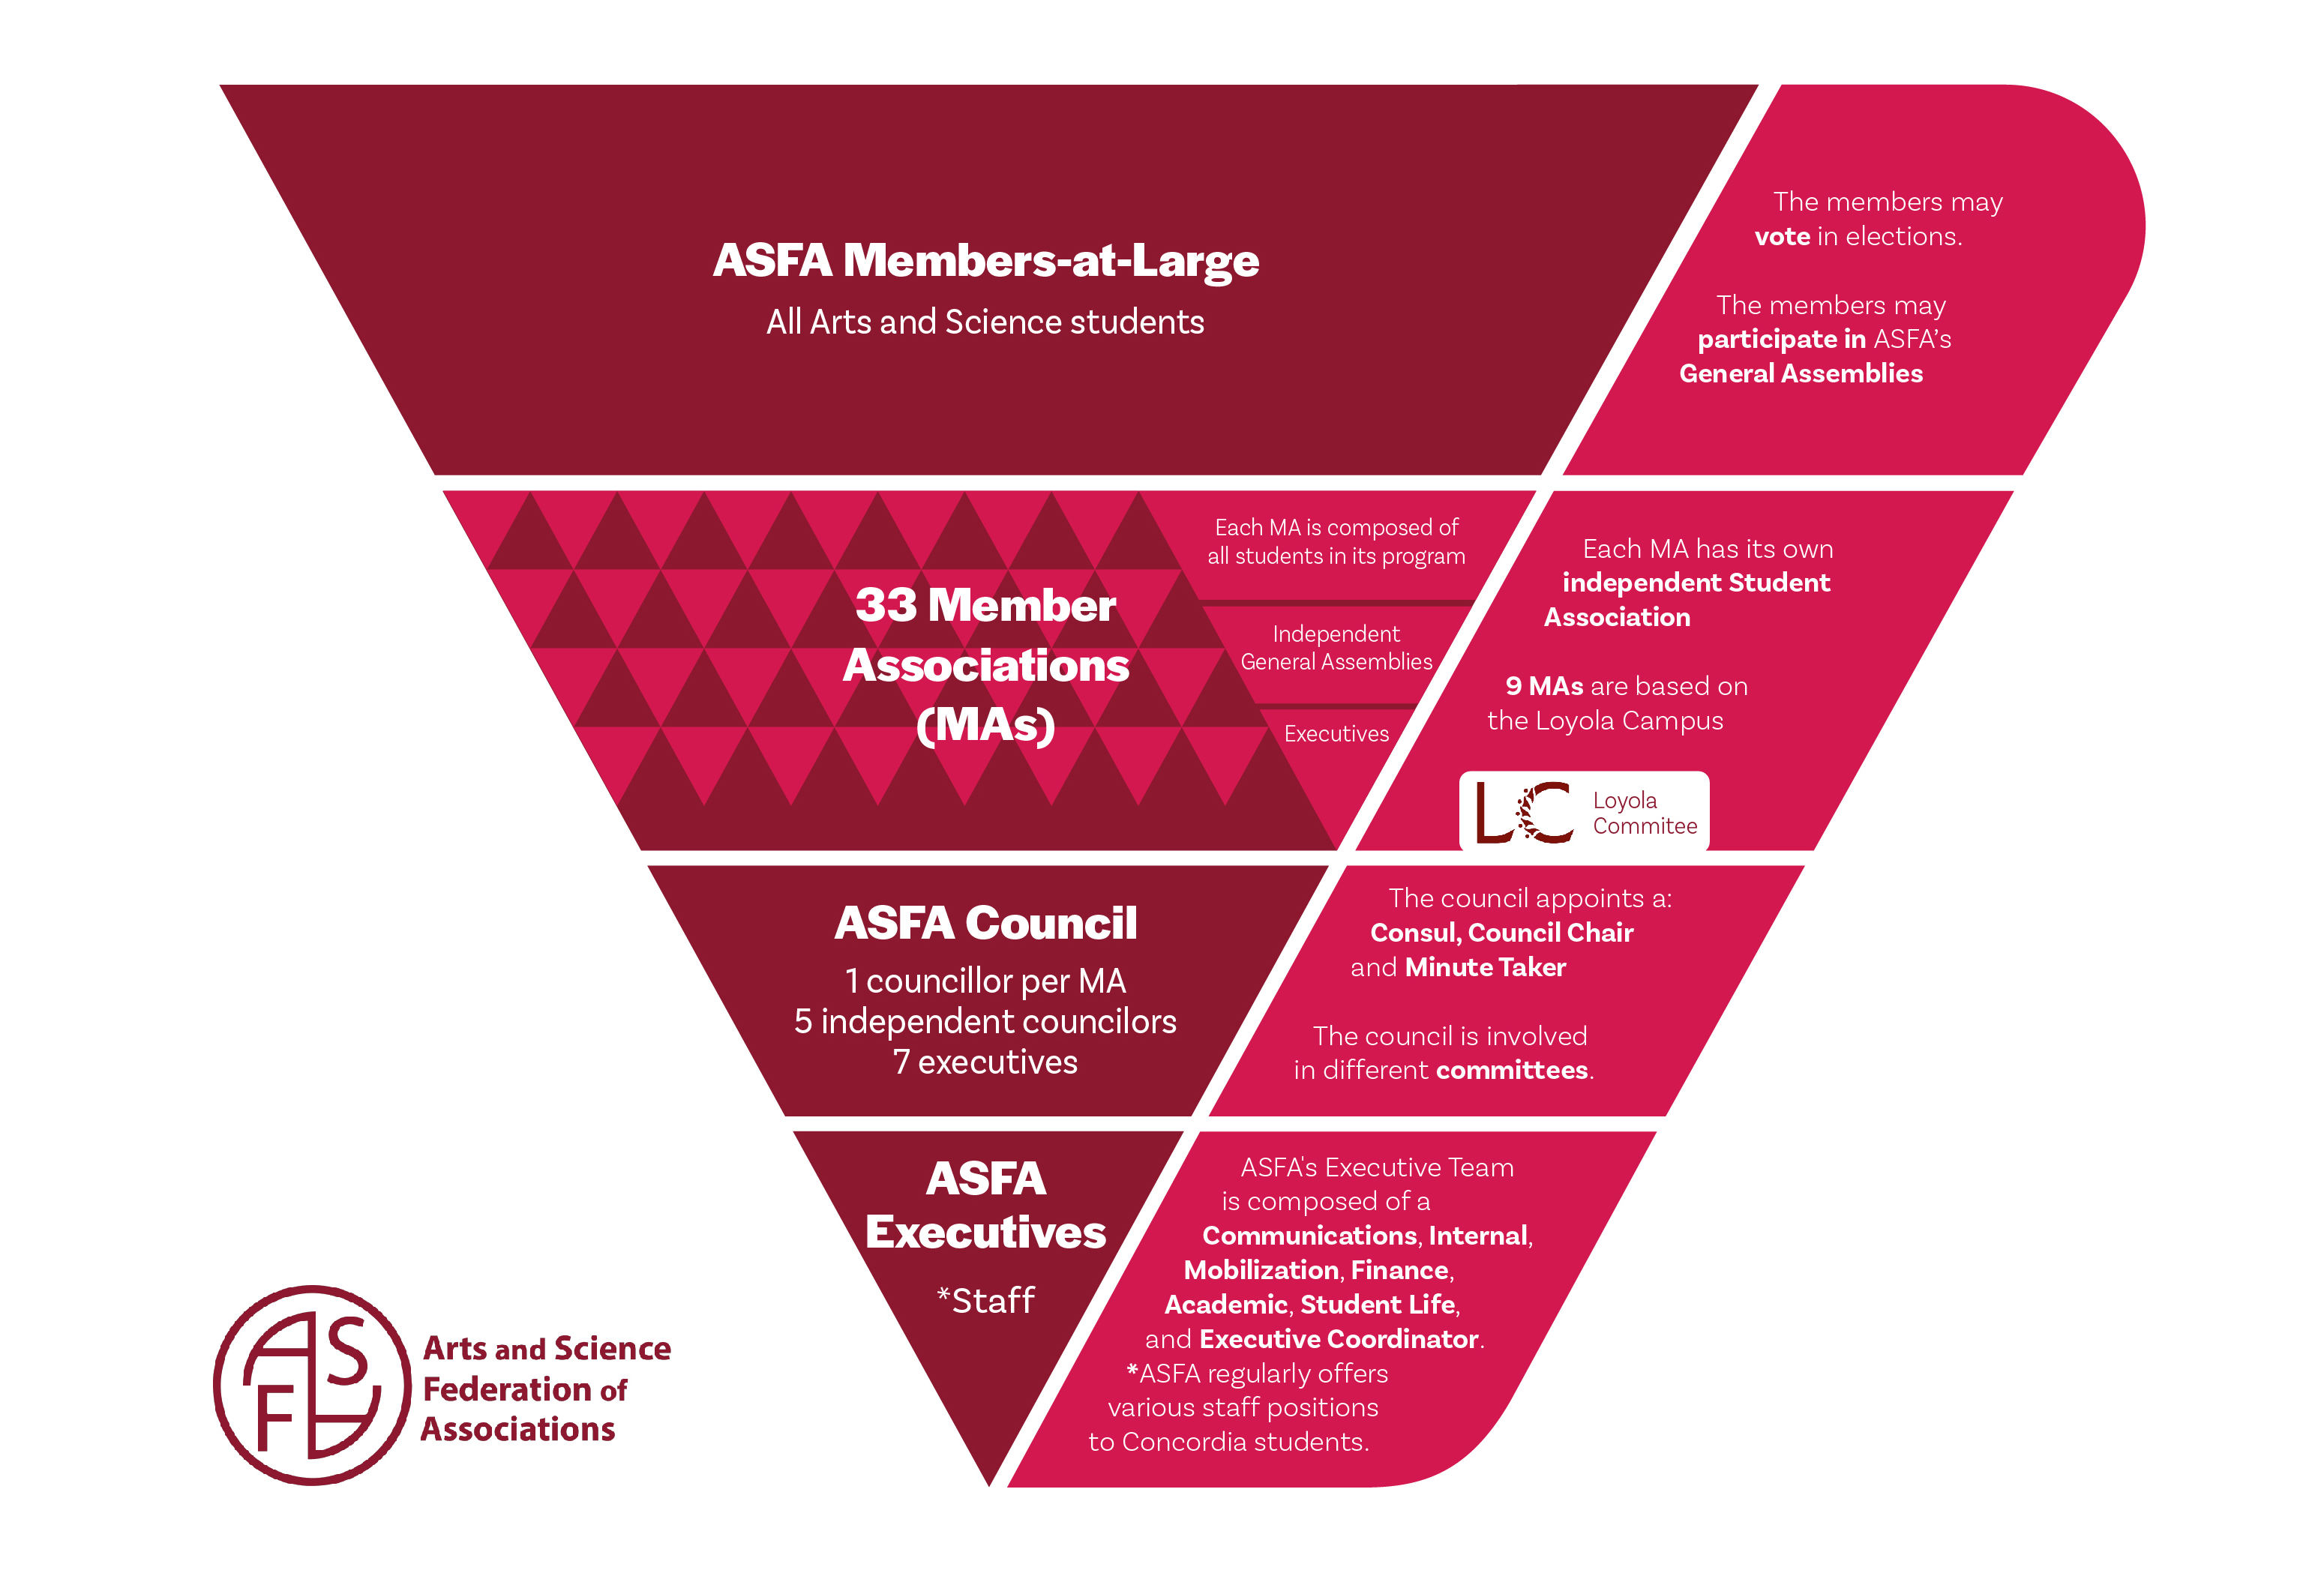 Inverted pyramid infographic of the roles at ASFA. Top of the chart are ASFA Members-at-Large. Below are 33 member associations (MAs). Below is the ASFA council and bottom is ASFA executives. Staff is at the bottom, but do not hold any decisive power.